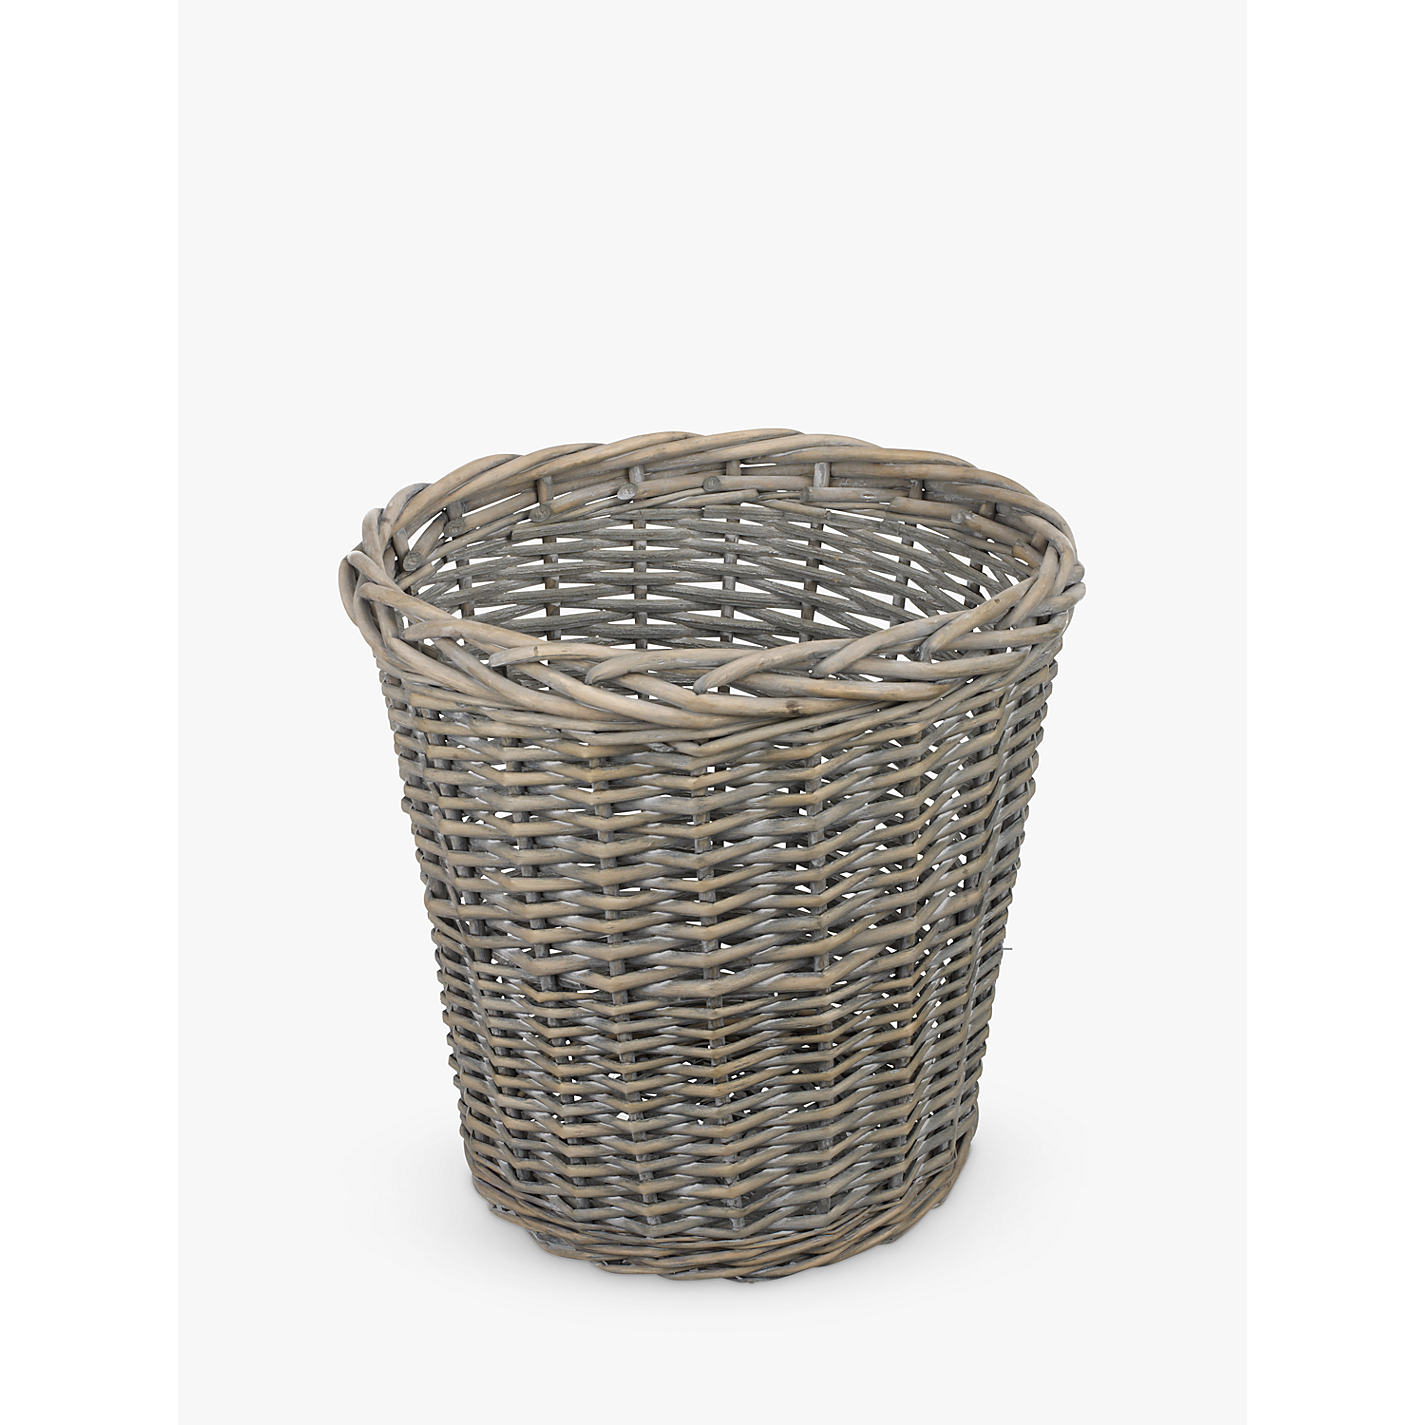 Wastepaper Basket Fascinating Buy John Lewis Wicker Wastepaper Bin Grey Wash  John Lewis Inspiration Design